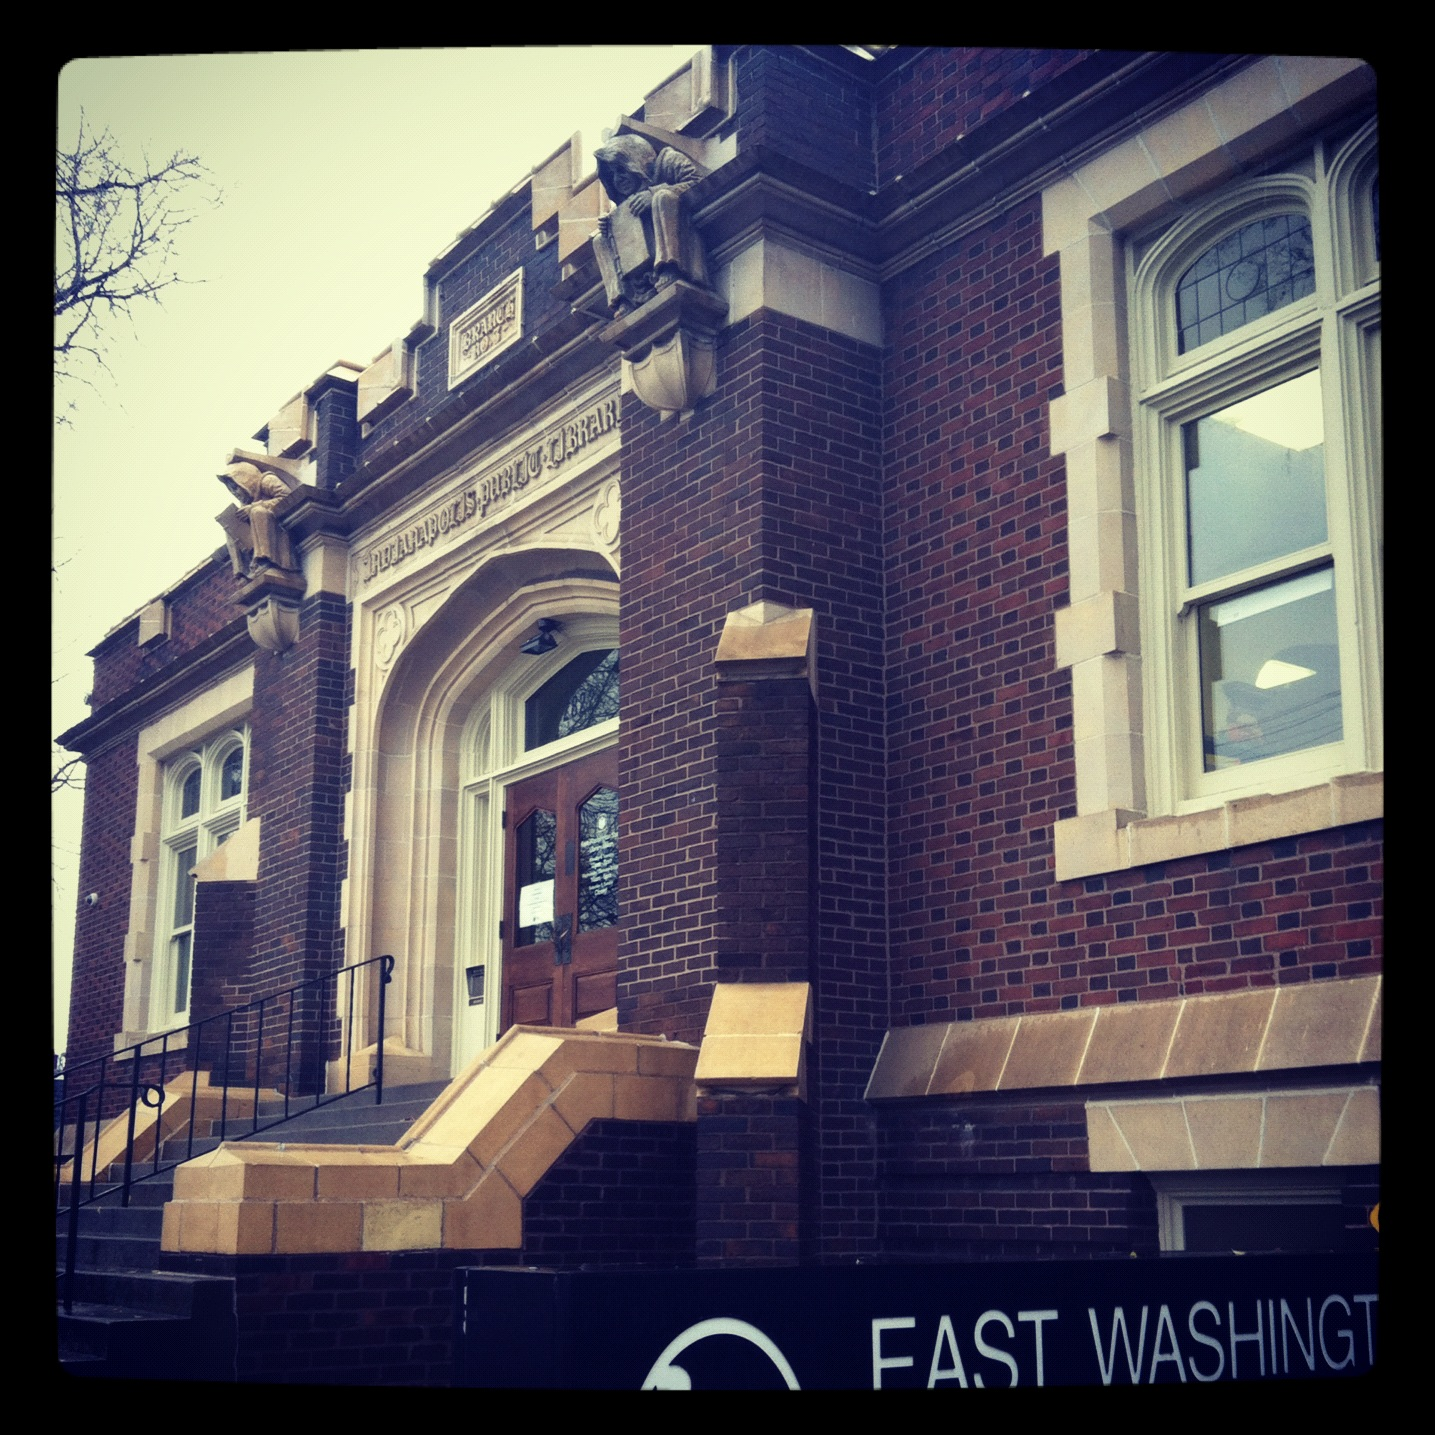 Visit the Oldest Public Library Branch in the City, Englewood's East Washington Branch